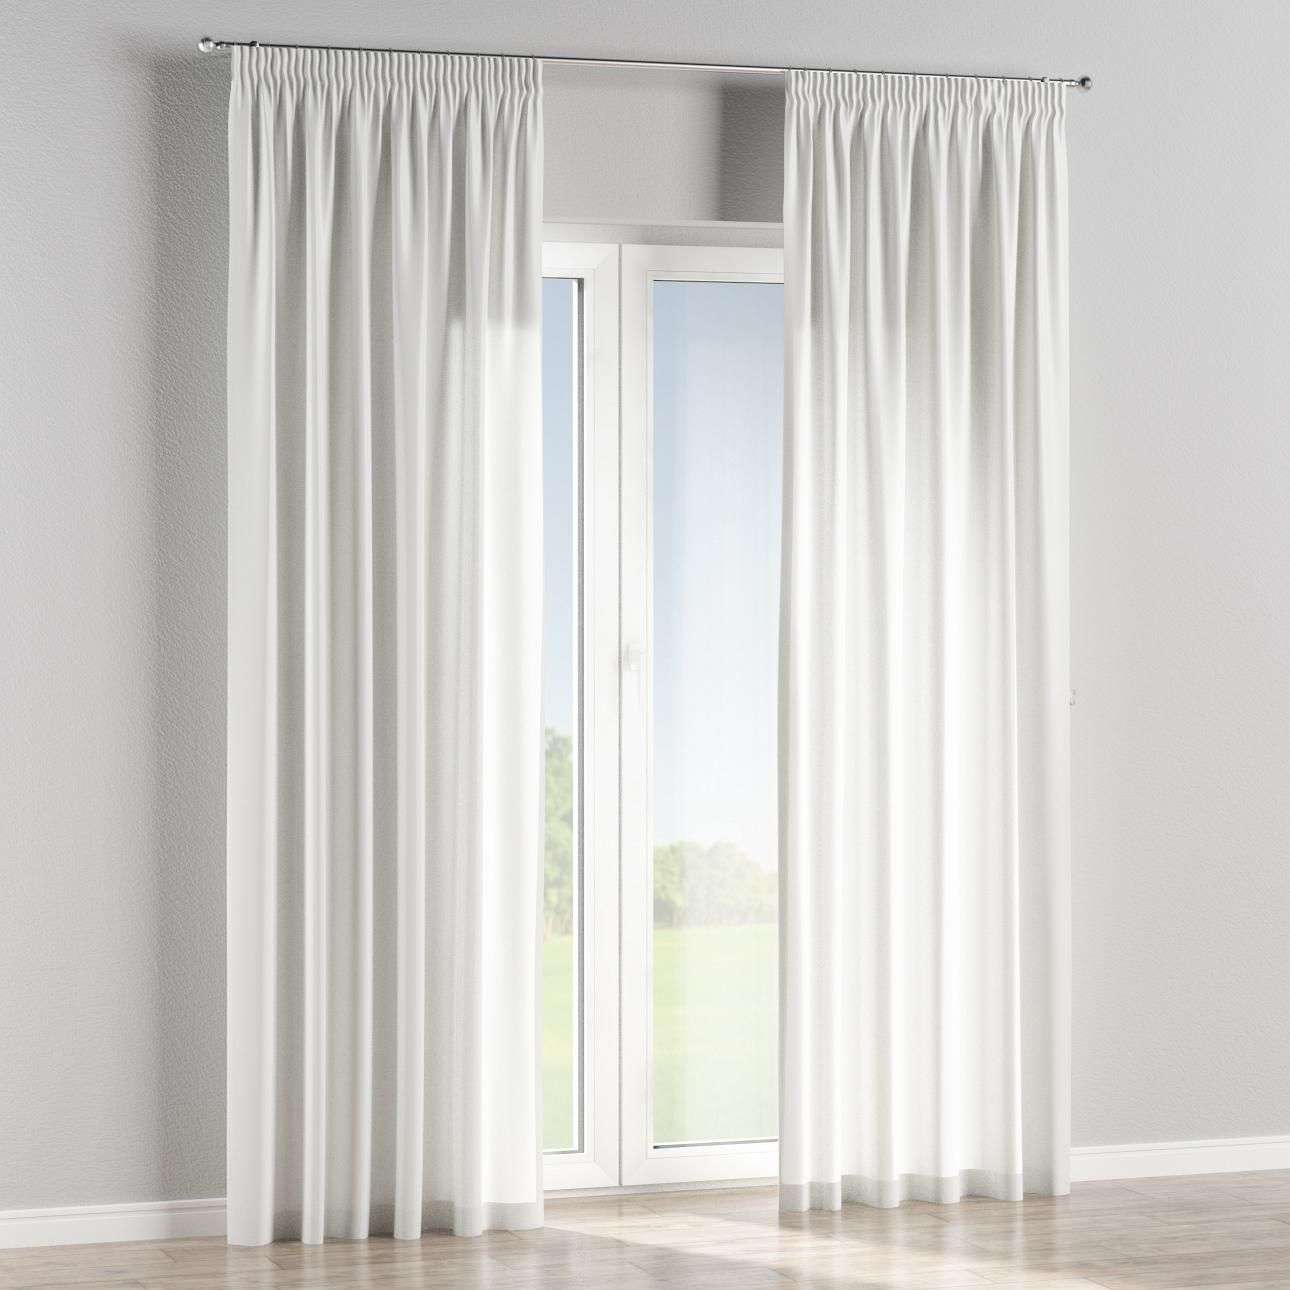 Pencil pleat lined curtains in collection Flowers, fabric: 140-98